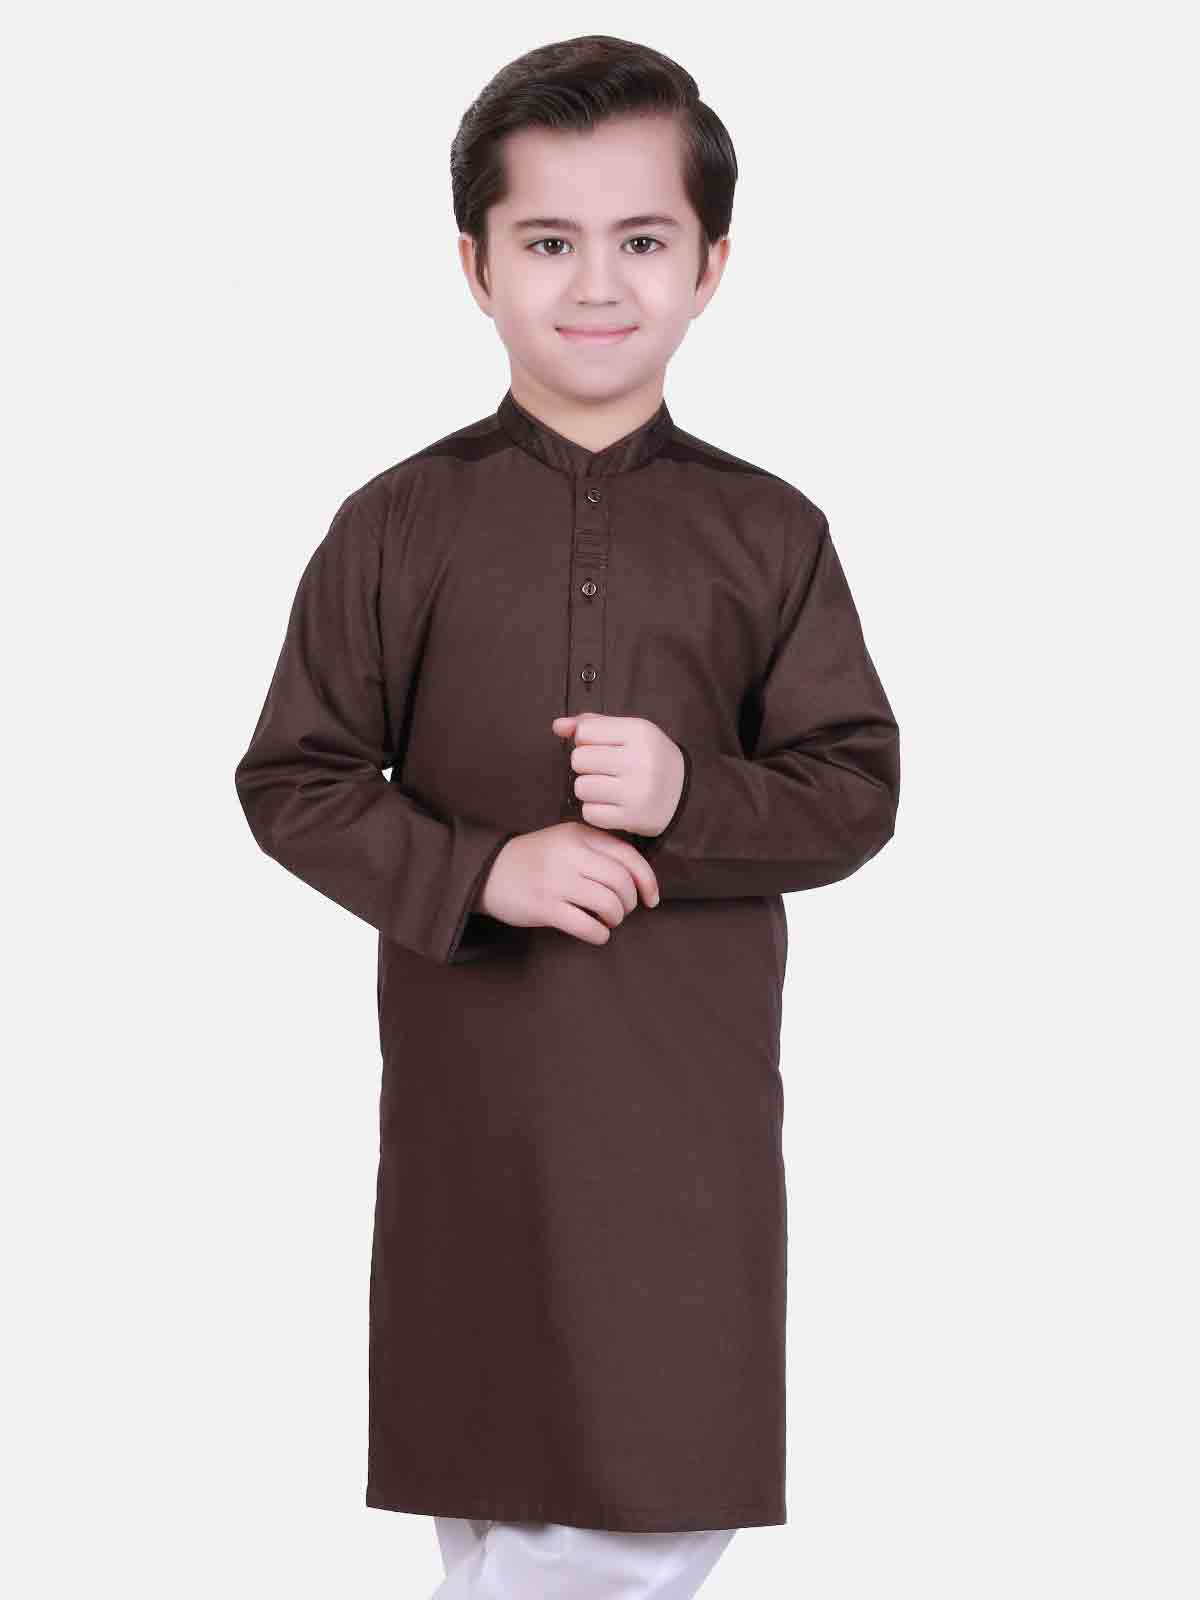 Dark brown kameez shalwar latest eid dresses for little boys in Pakistan 2017